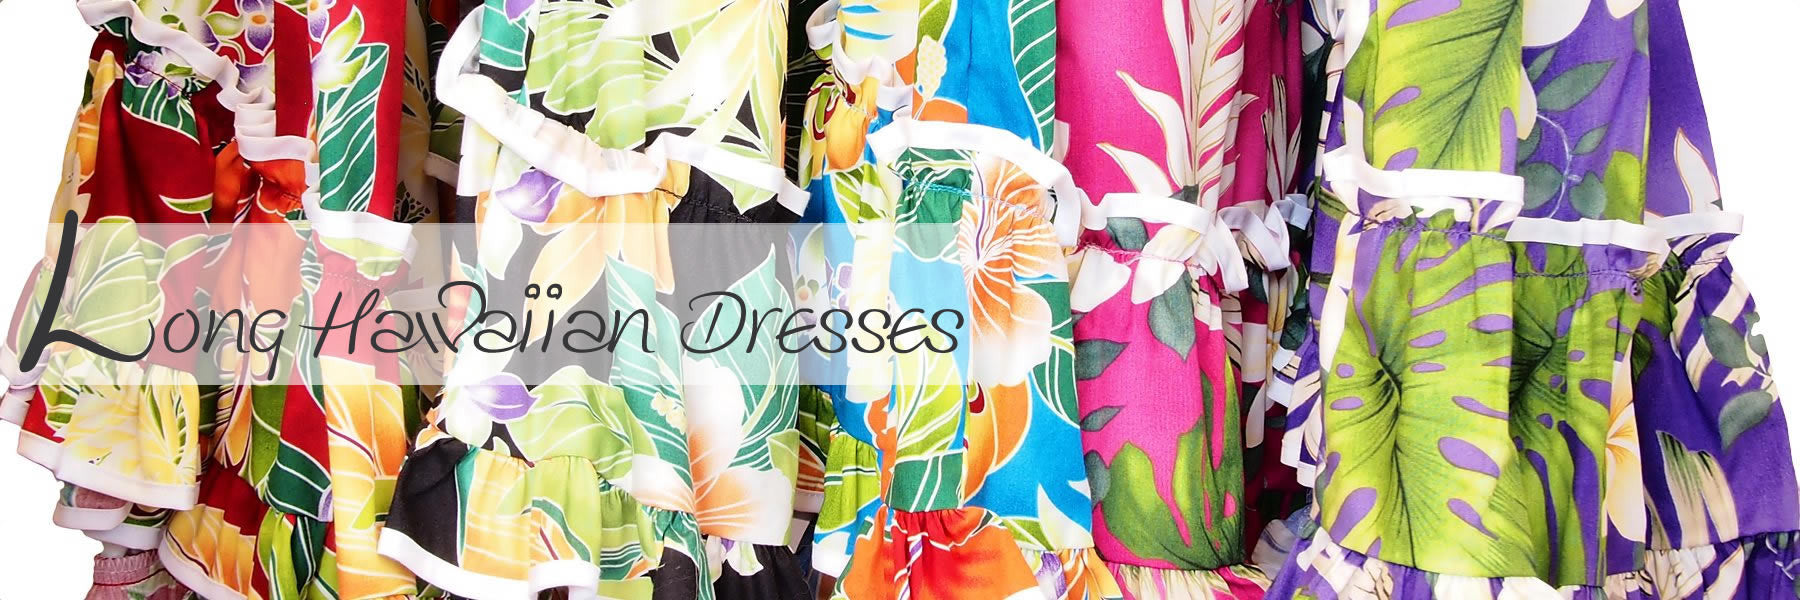 long hawaiian dresses papayasun